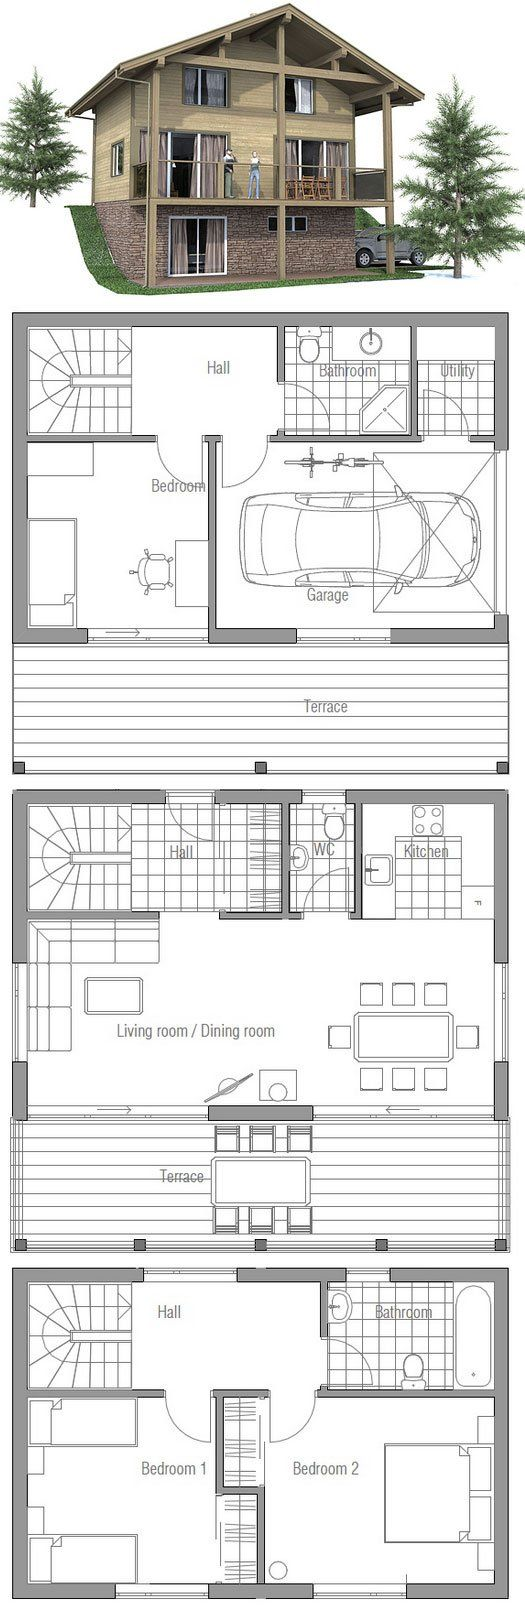 top 25 best small home design ideas on pinterest small house 175 beautiful designer bedrooms to inspire you small house planssmall